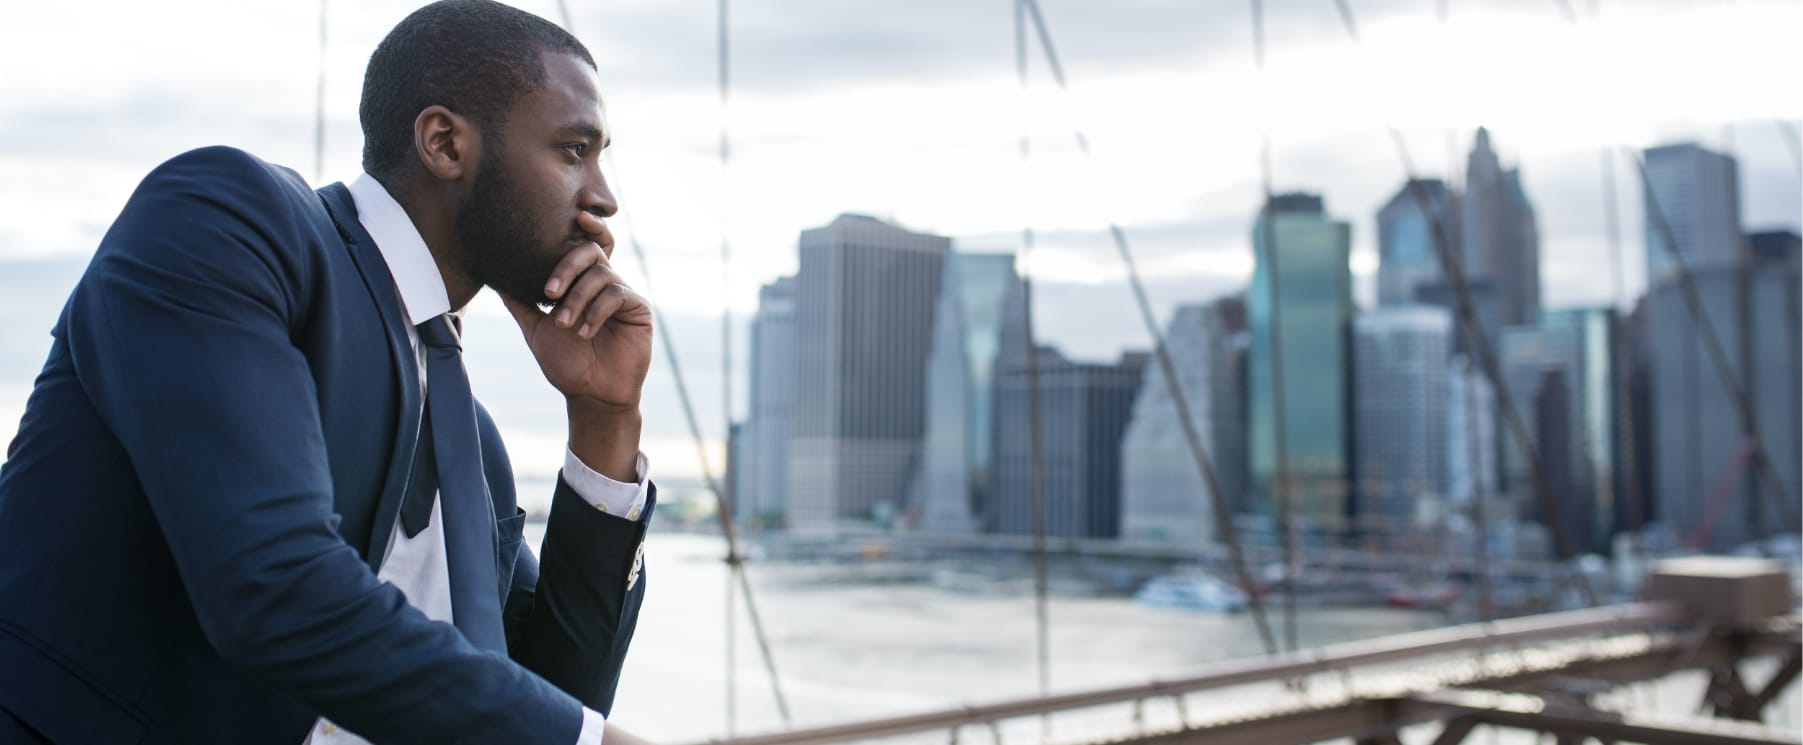 A corporate finance advisor can help you reach your goals